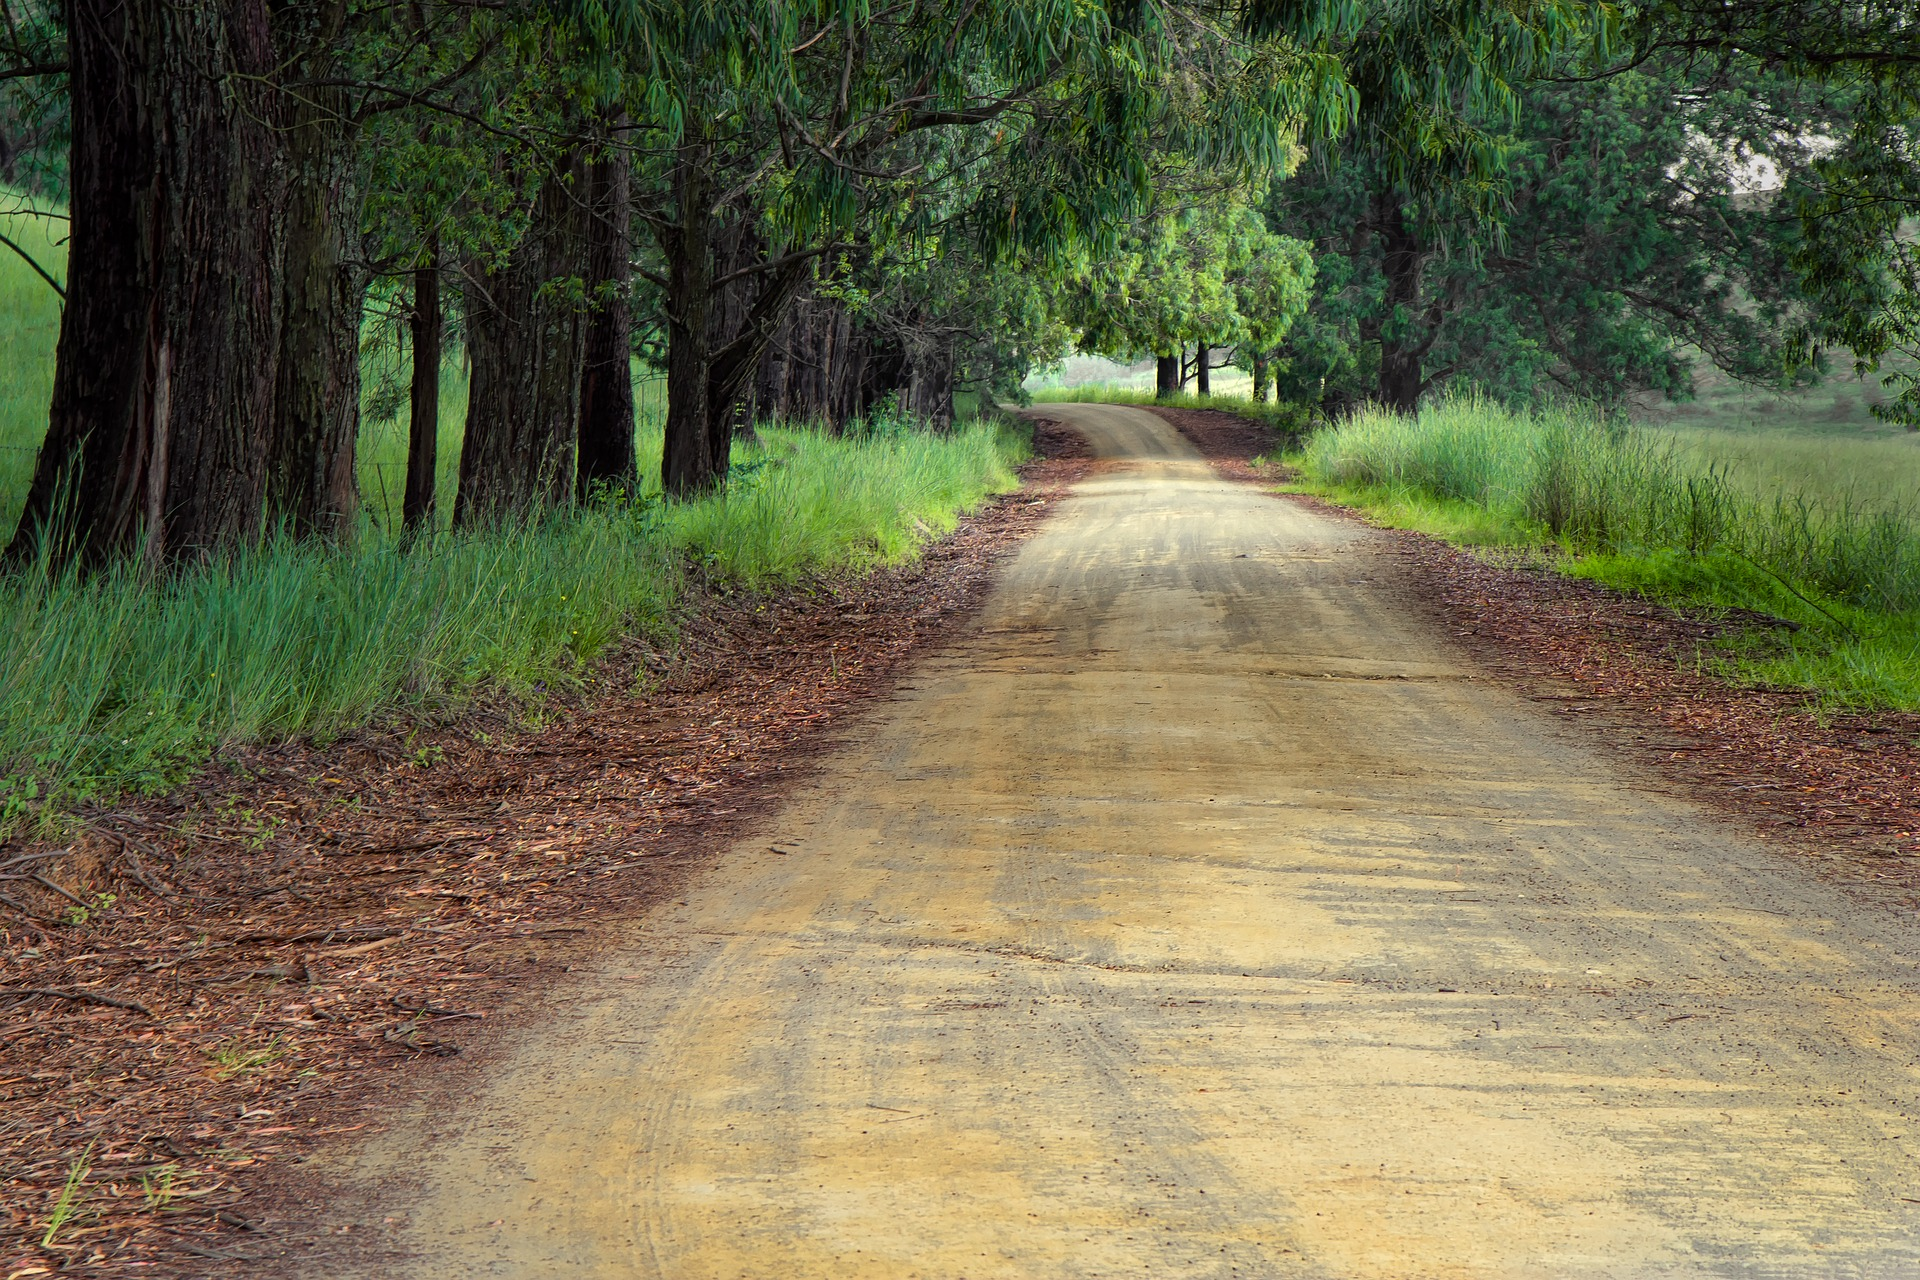 a tree-lined dirt road in the country